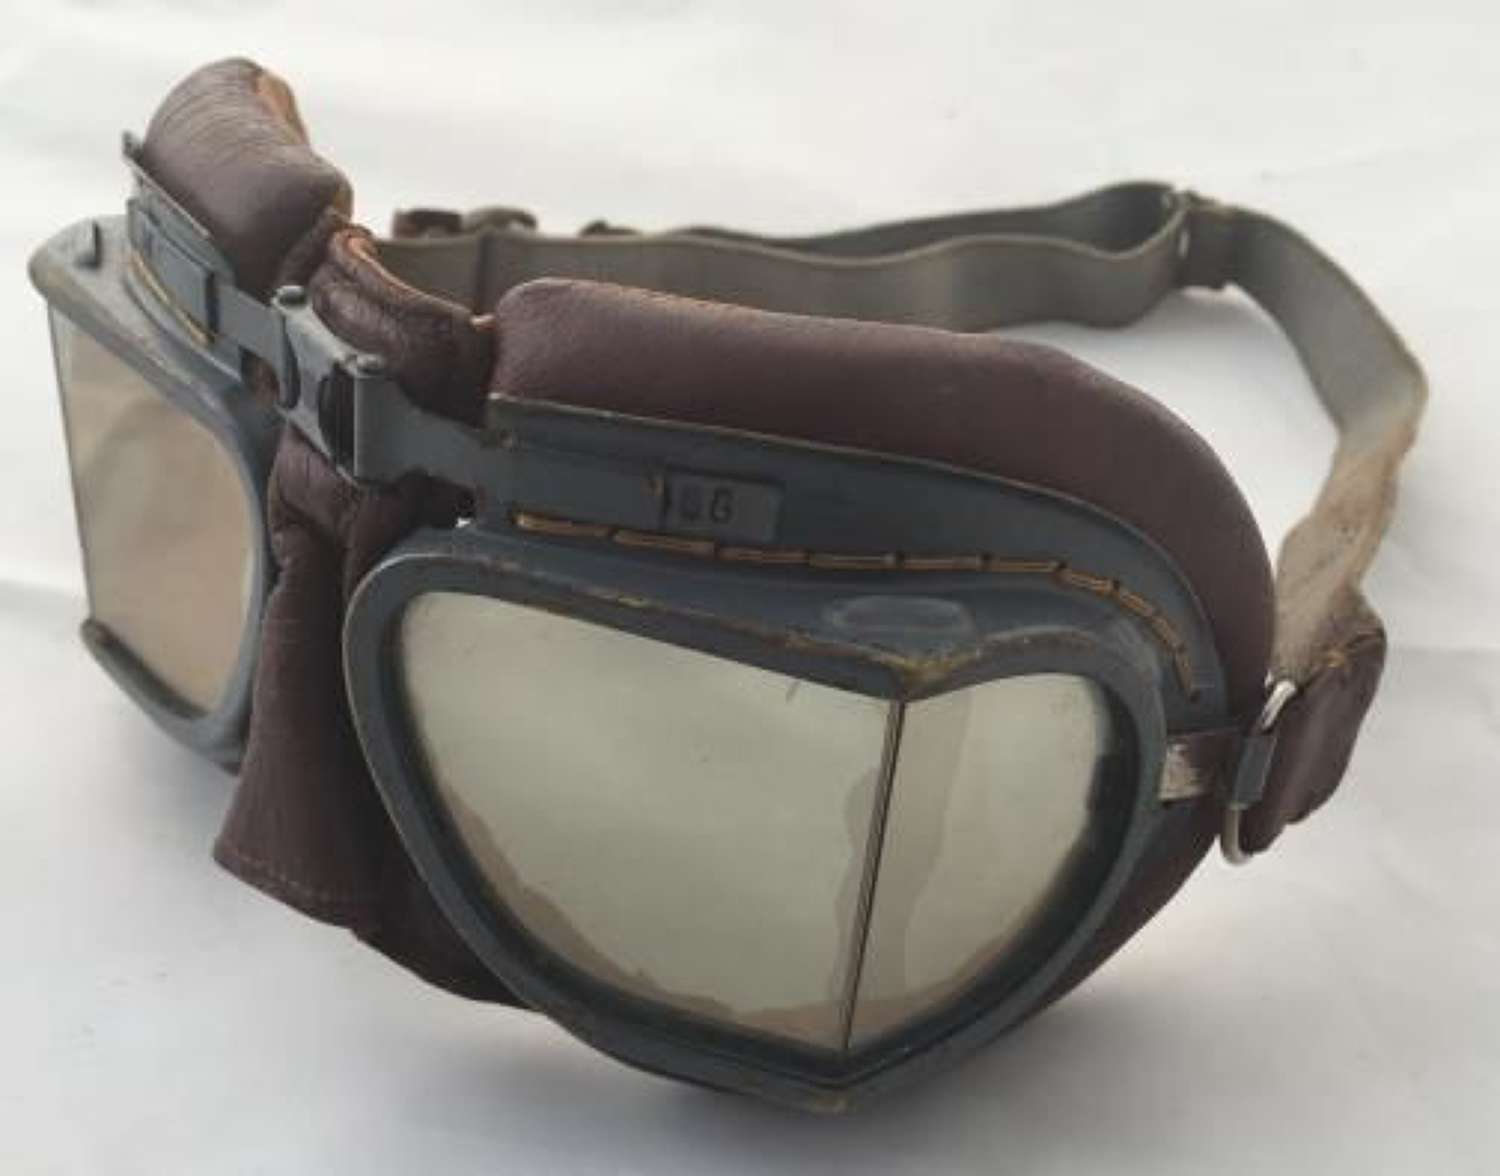 Outstanding RAF MK VIII Flying Goggles - Air Ministry Marked